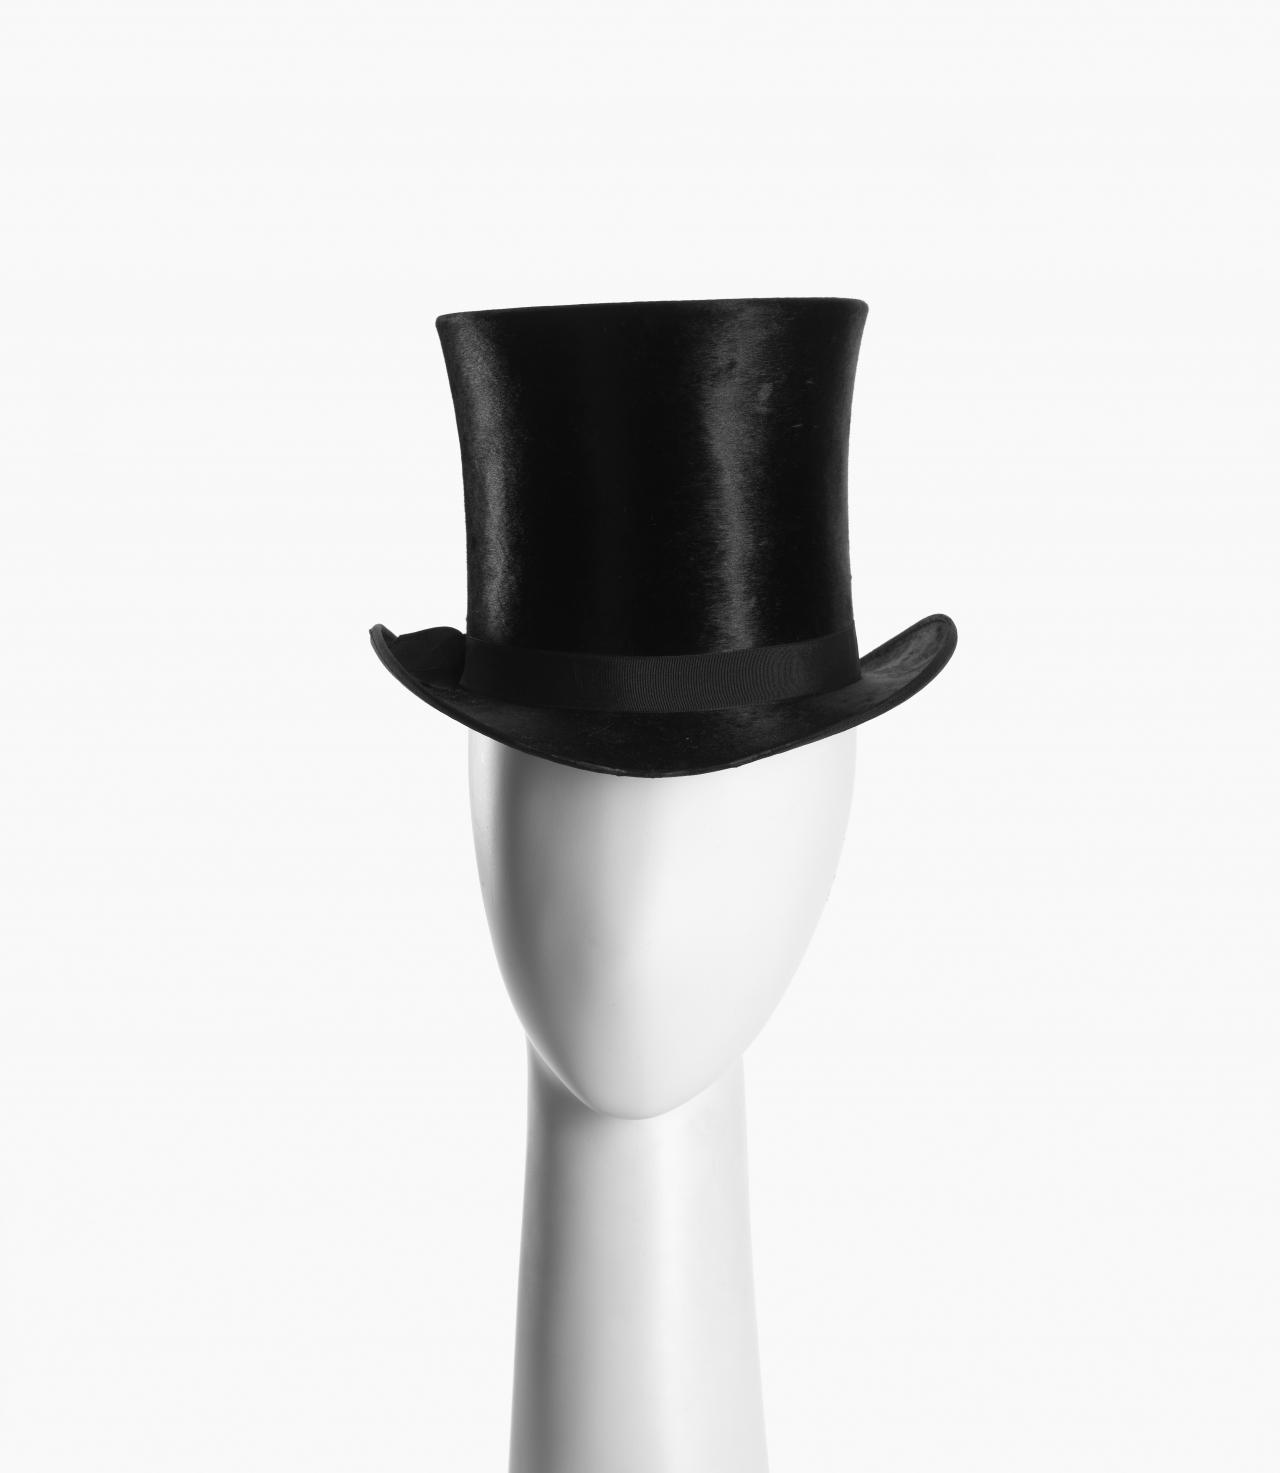 Lady's top hat